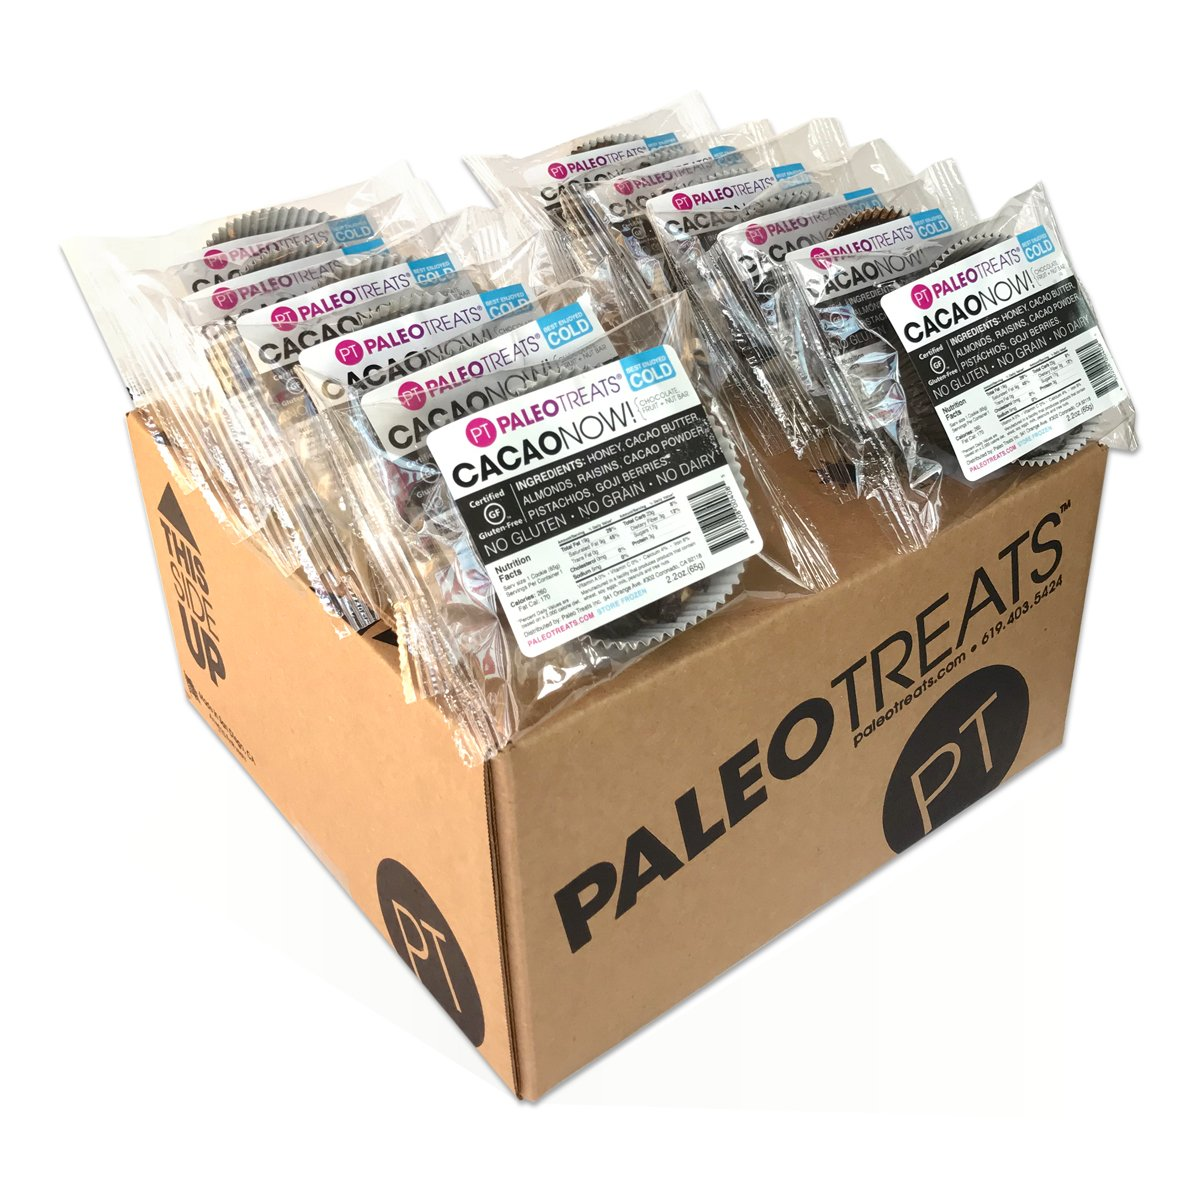 Paleo Treats Cacao Now!: Paleo cookie, Gluten-Free, Grain-Free, Dairy-Free, Soy-Free, Egg-Free, Real Food Dessert (Box of 12)